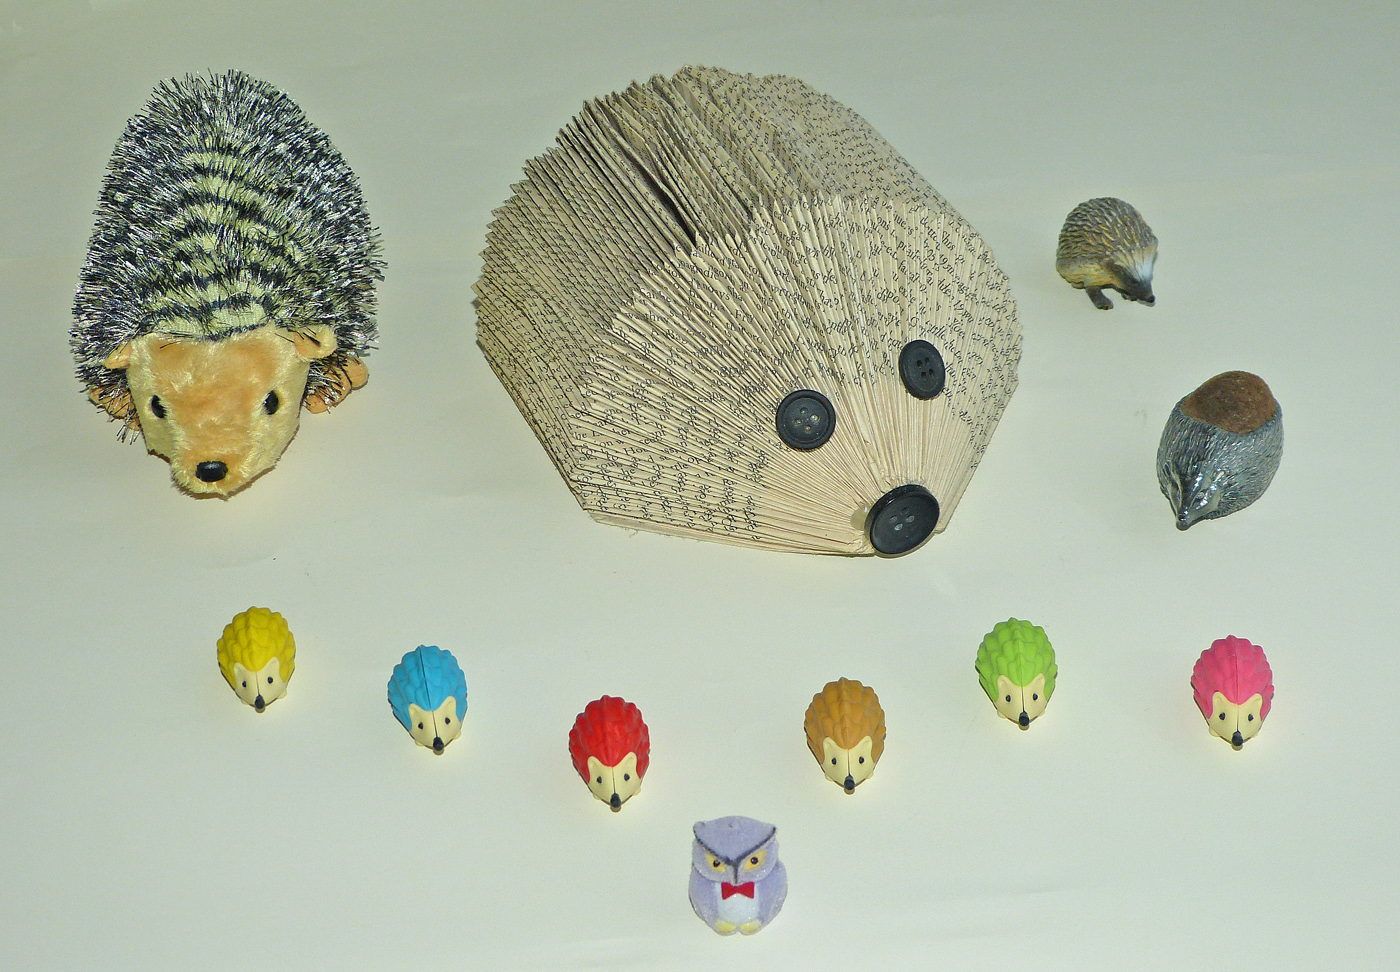 MR. OWL'S ORIGAMI HEDGEHOG GANG by John Cano-Lopez